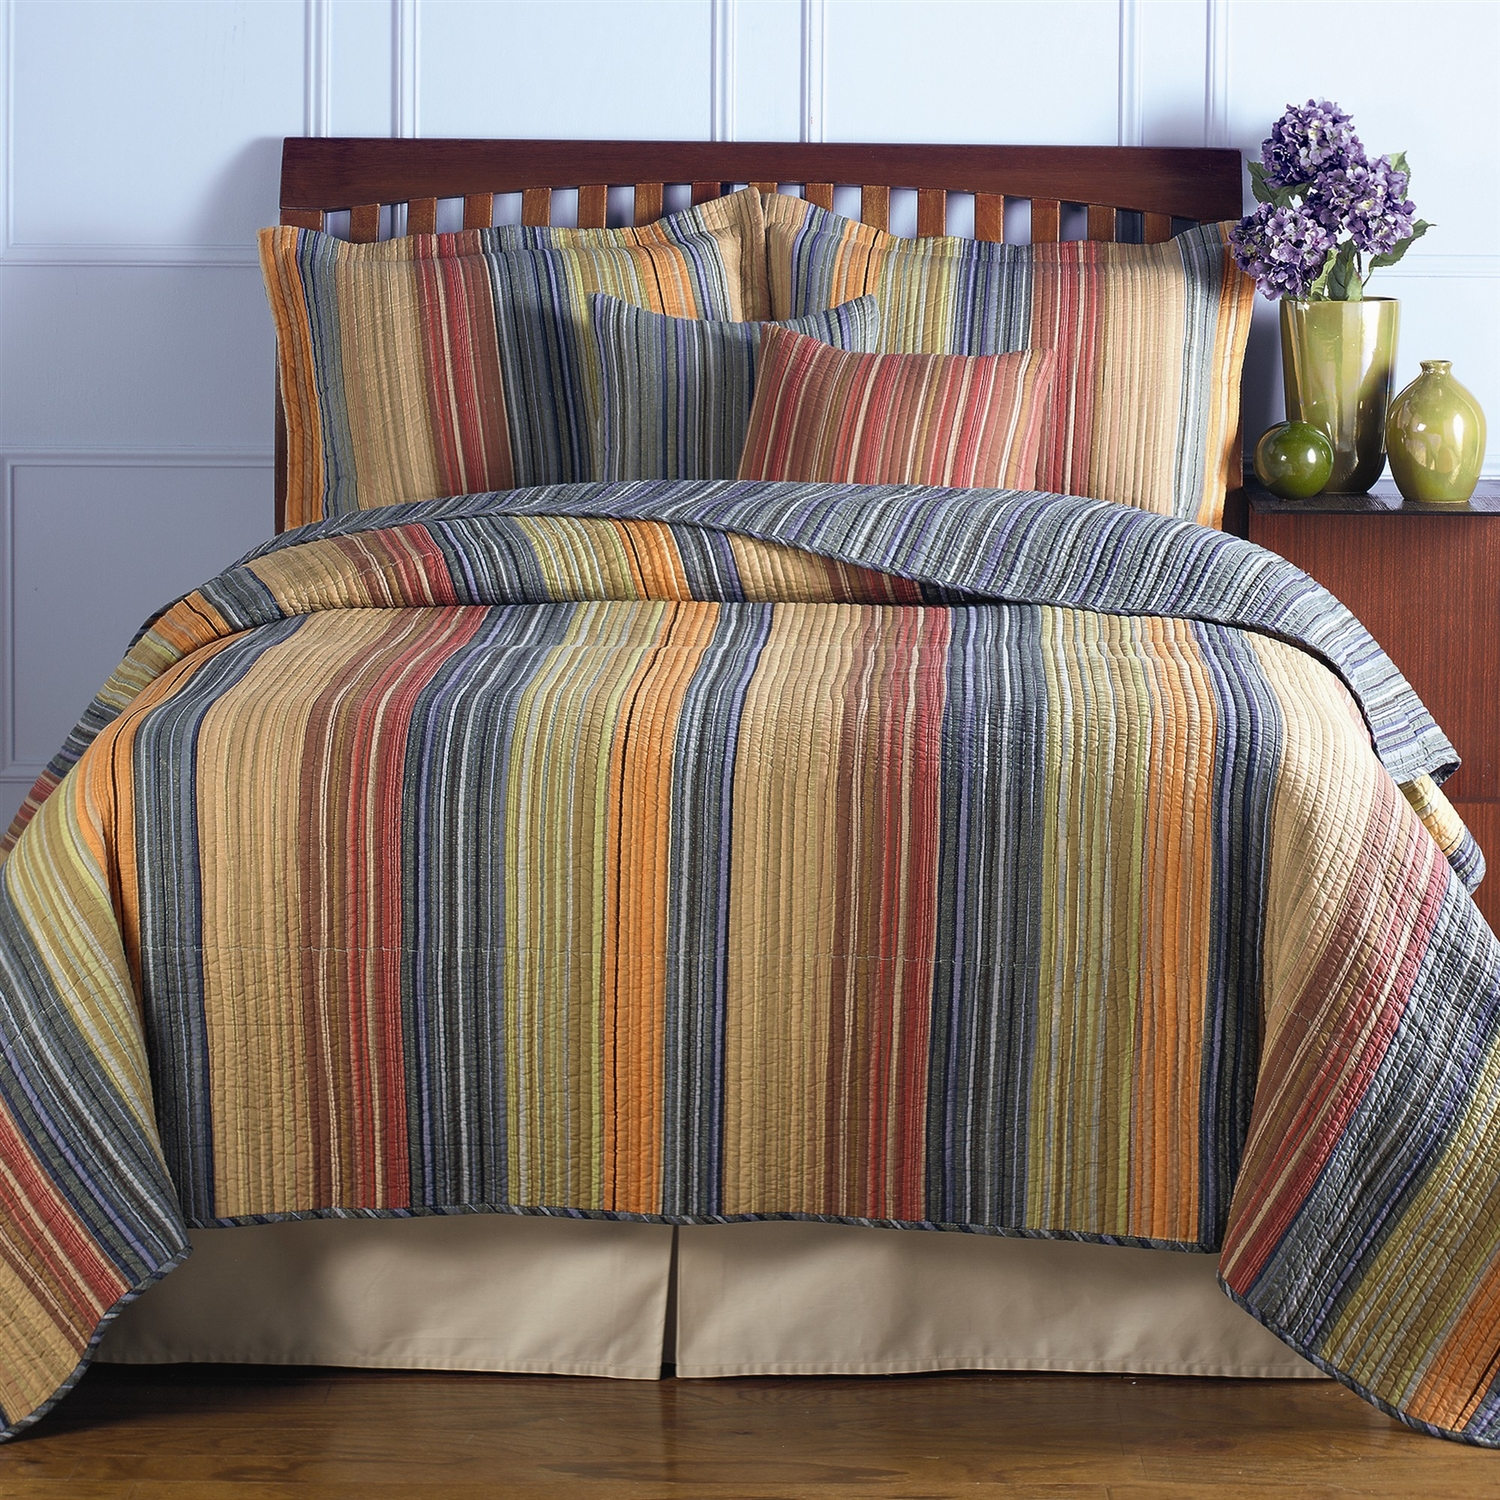 King Quilt Size King Size 100 Cotton Quilt Set With Brown Orange Red Blue